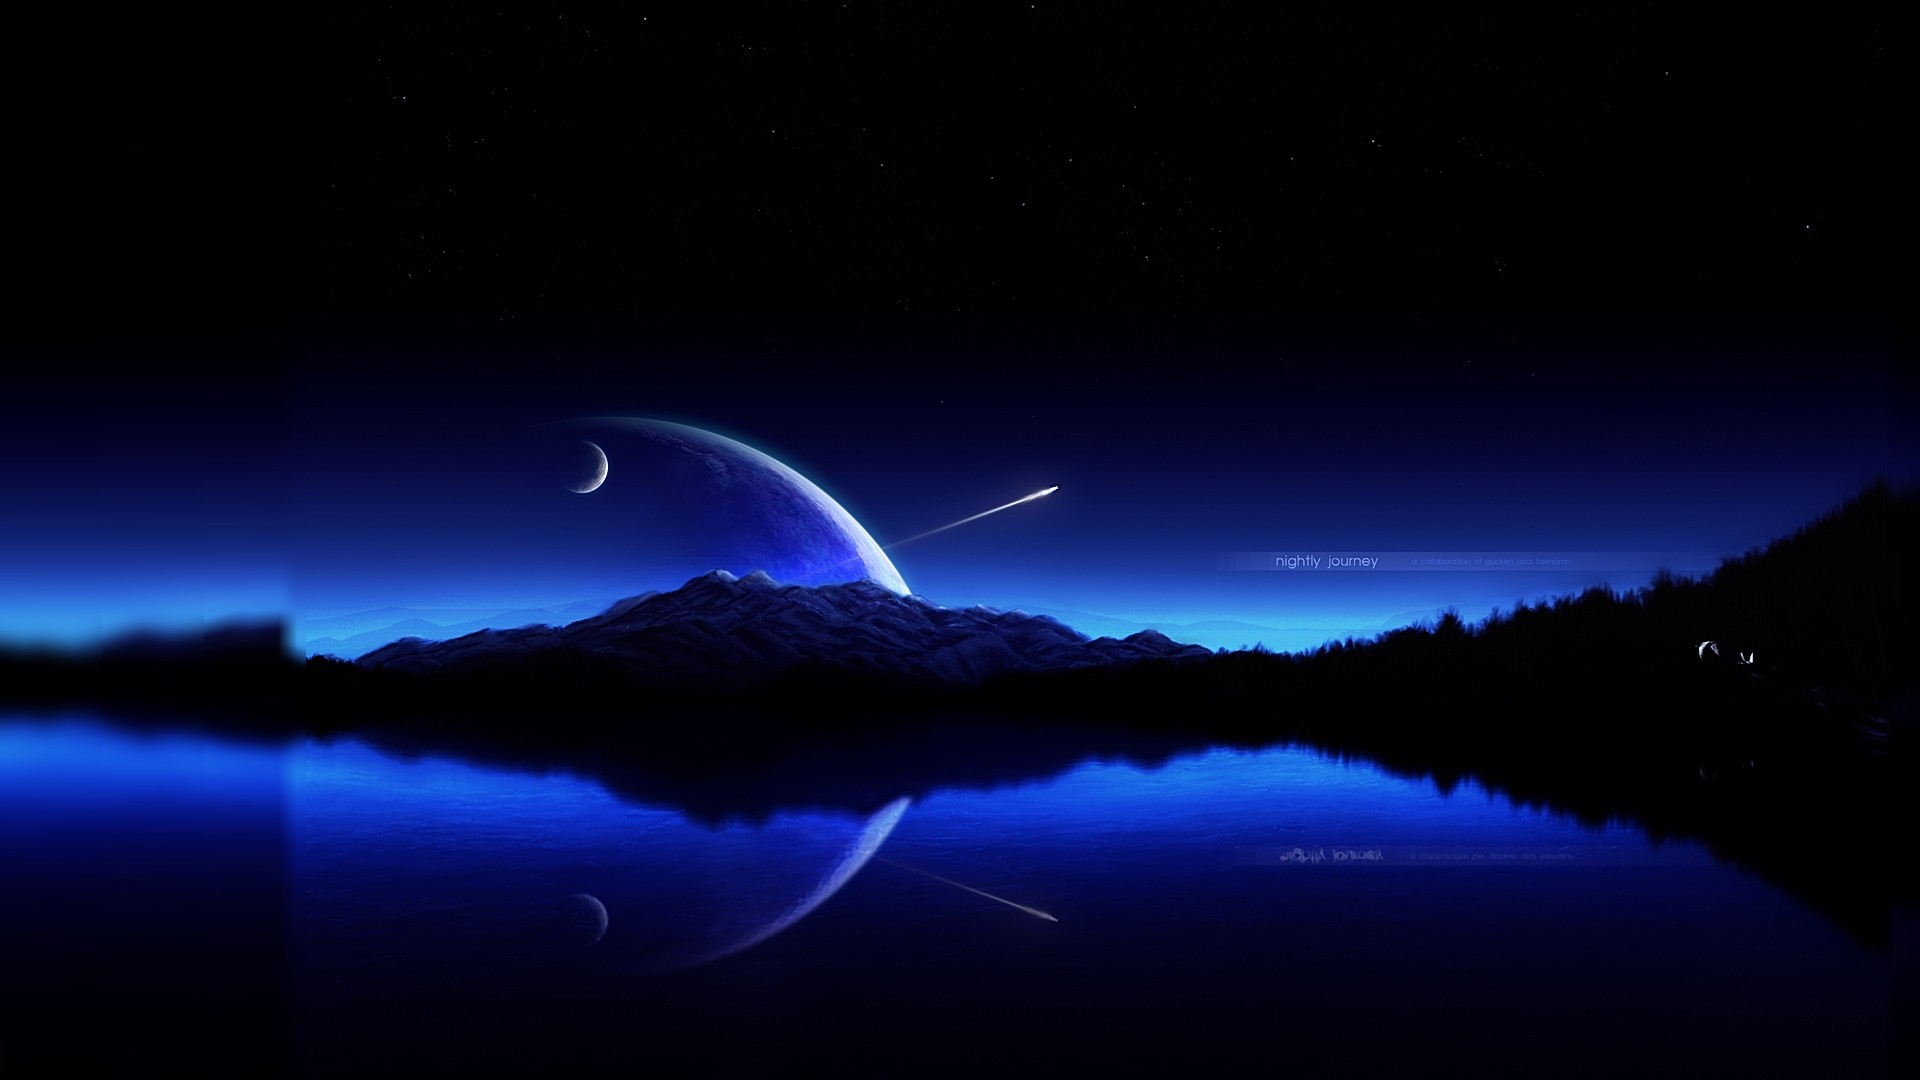 Blue Sky Shooting Star   HD Wallpapers 1920x1080